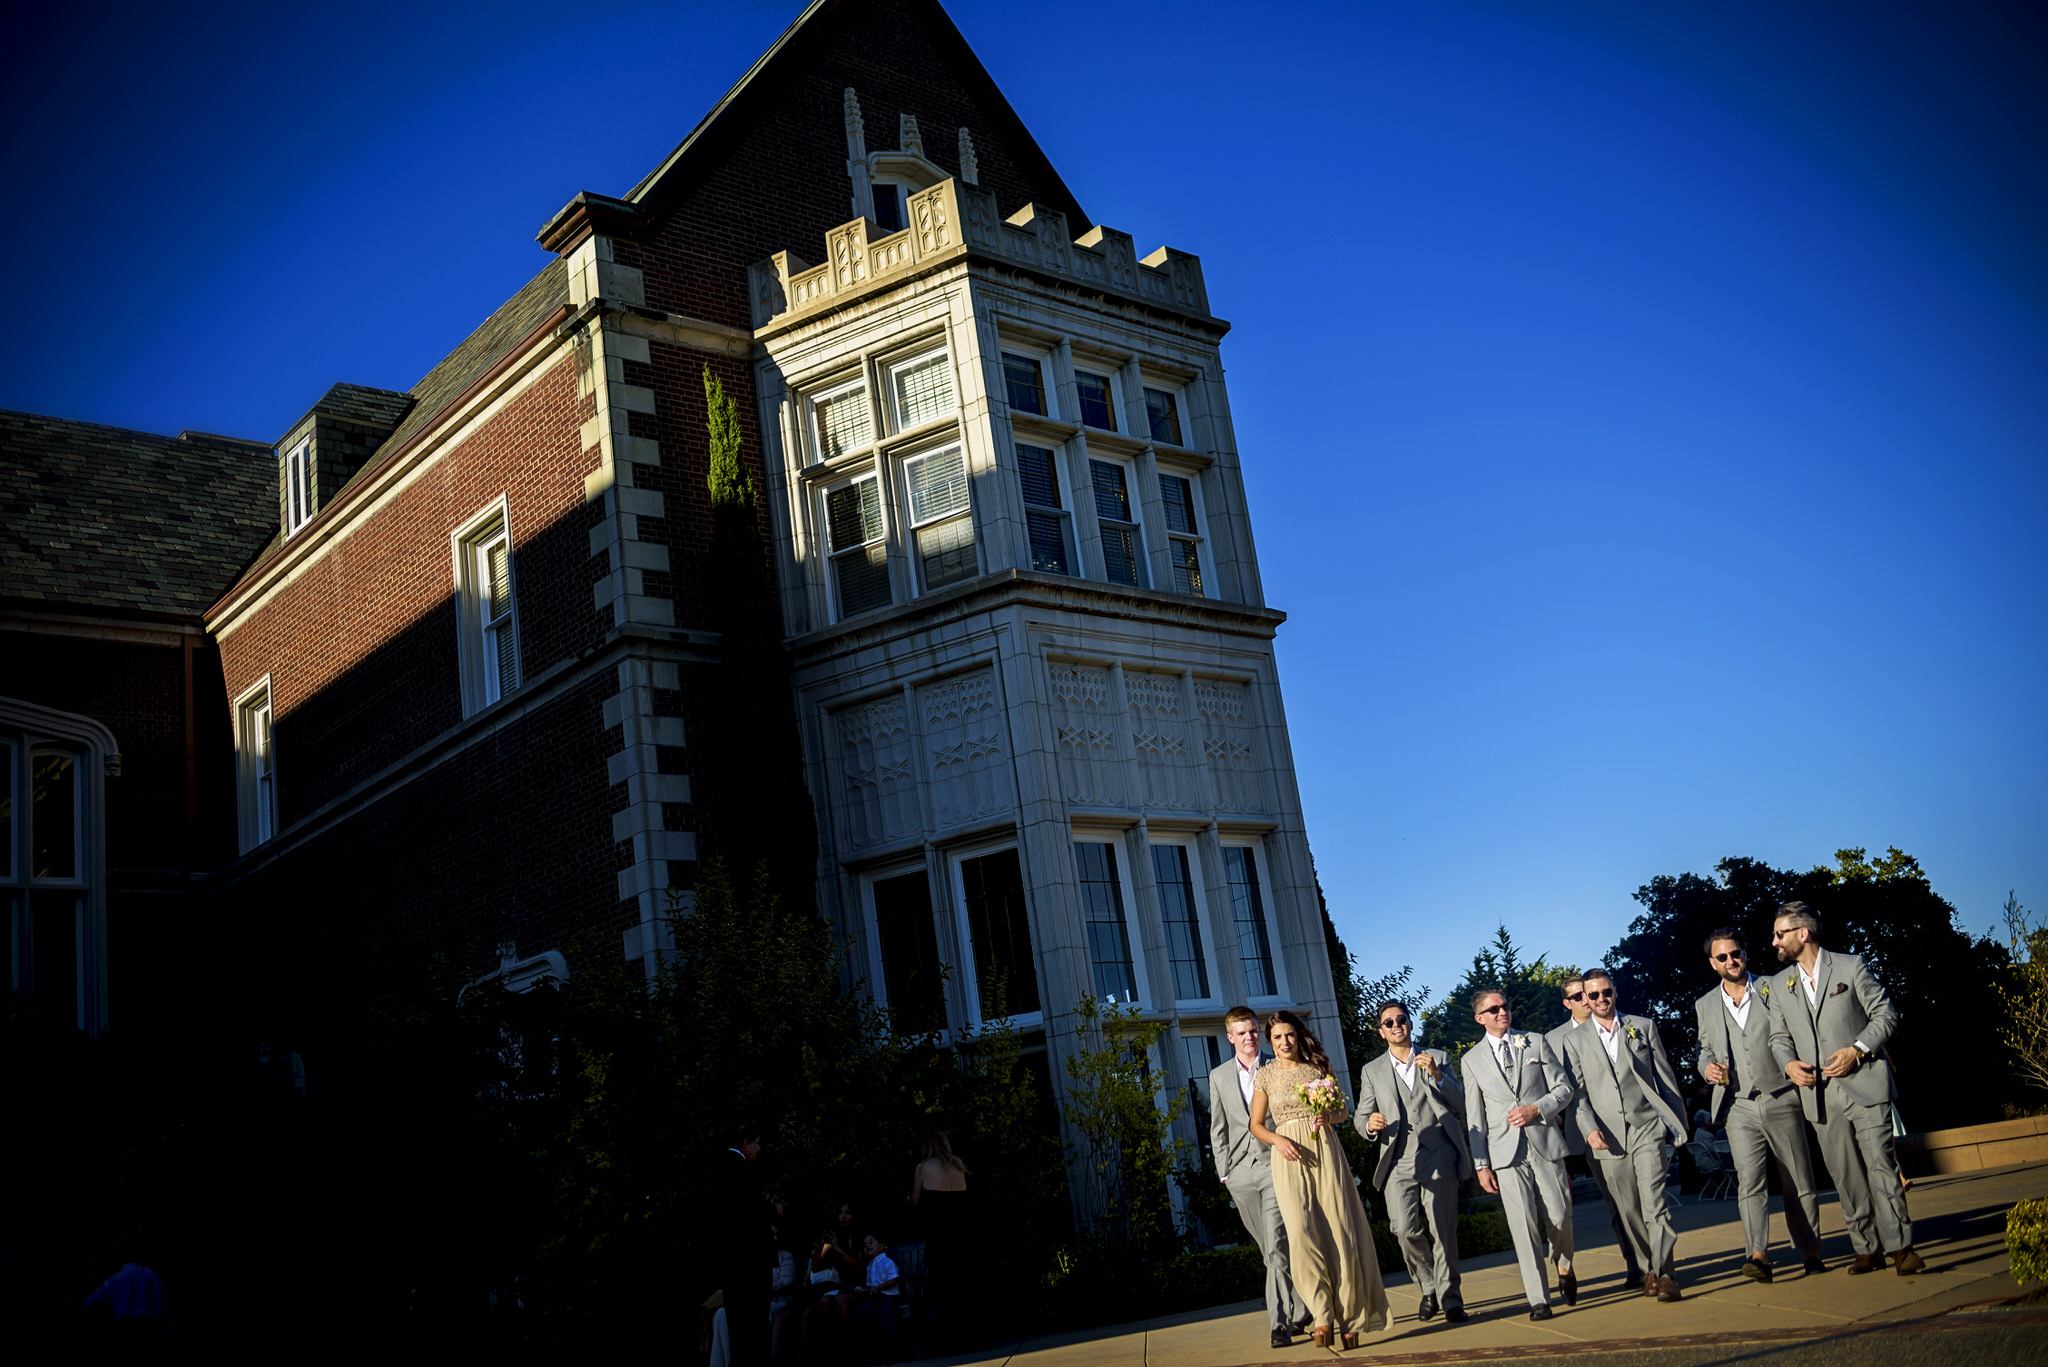 Gloria and Coy's wedding at Kohl Mansion in Burlingame, California.